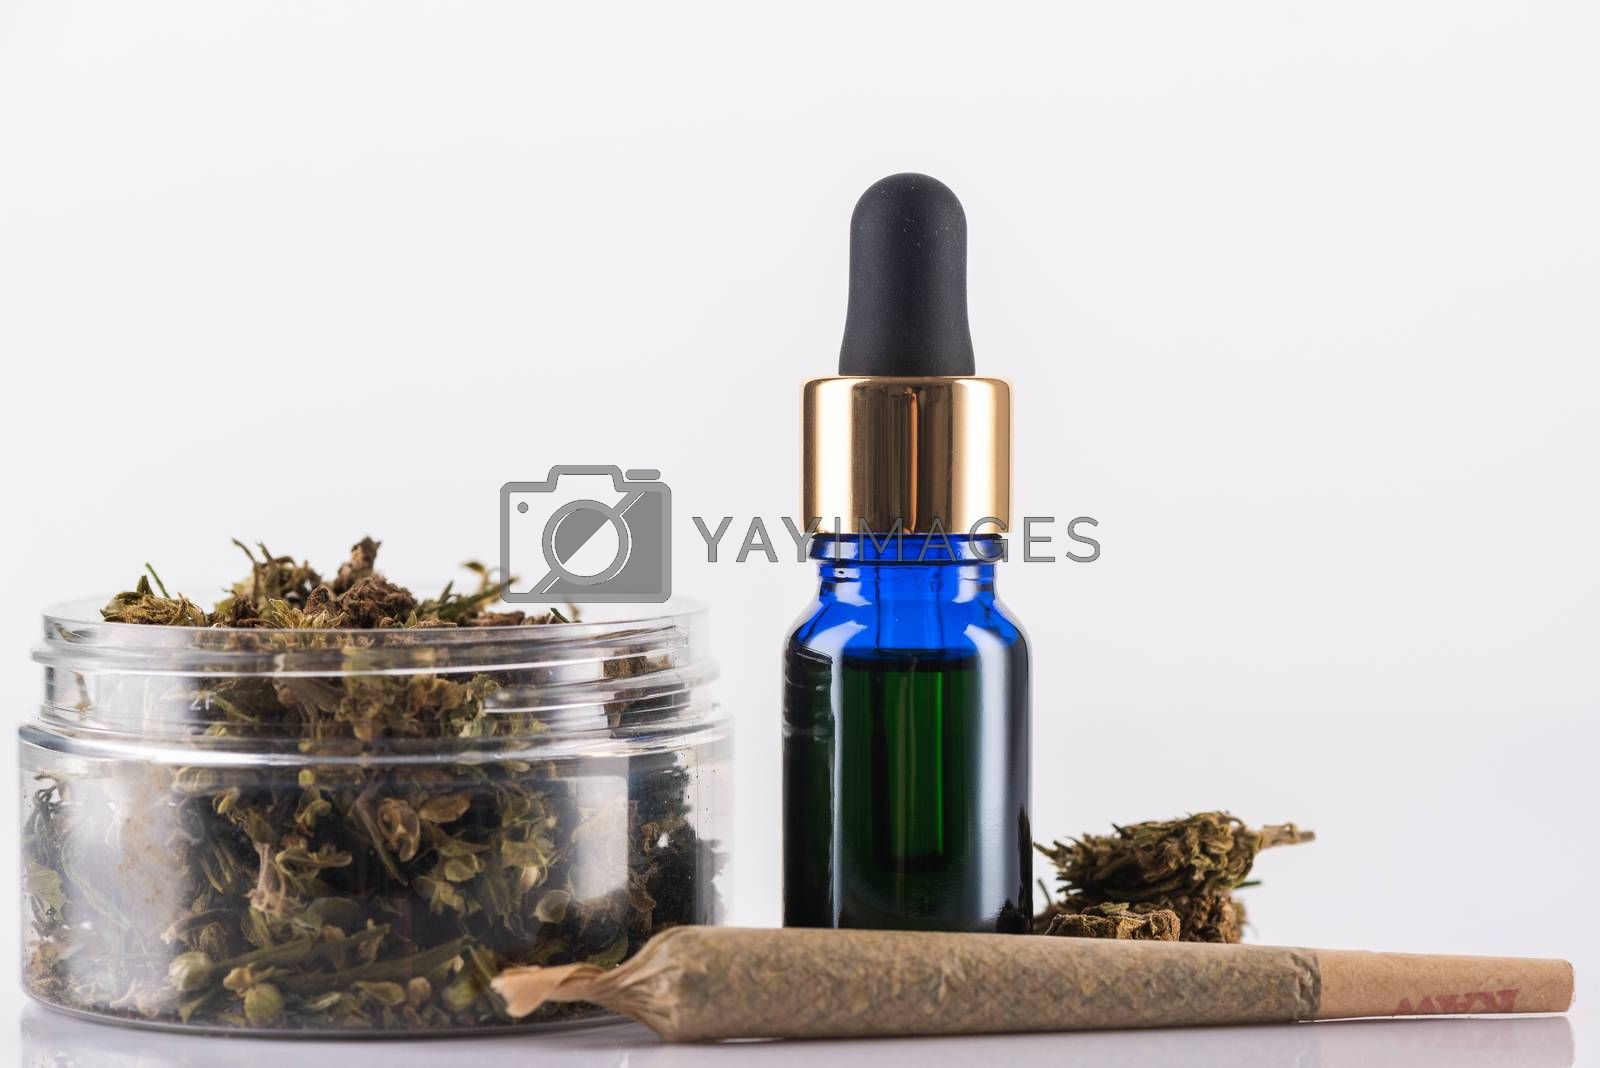 Cannabidiol Oil and Cannabis Flower Buds. Medical Marijuana Conceptual Image.